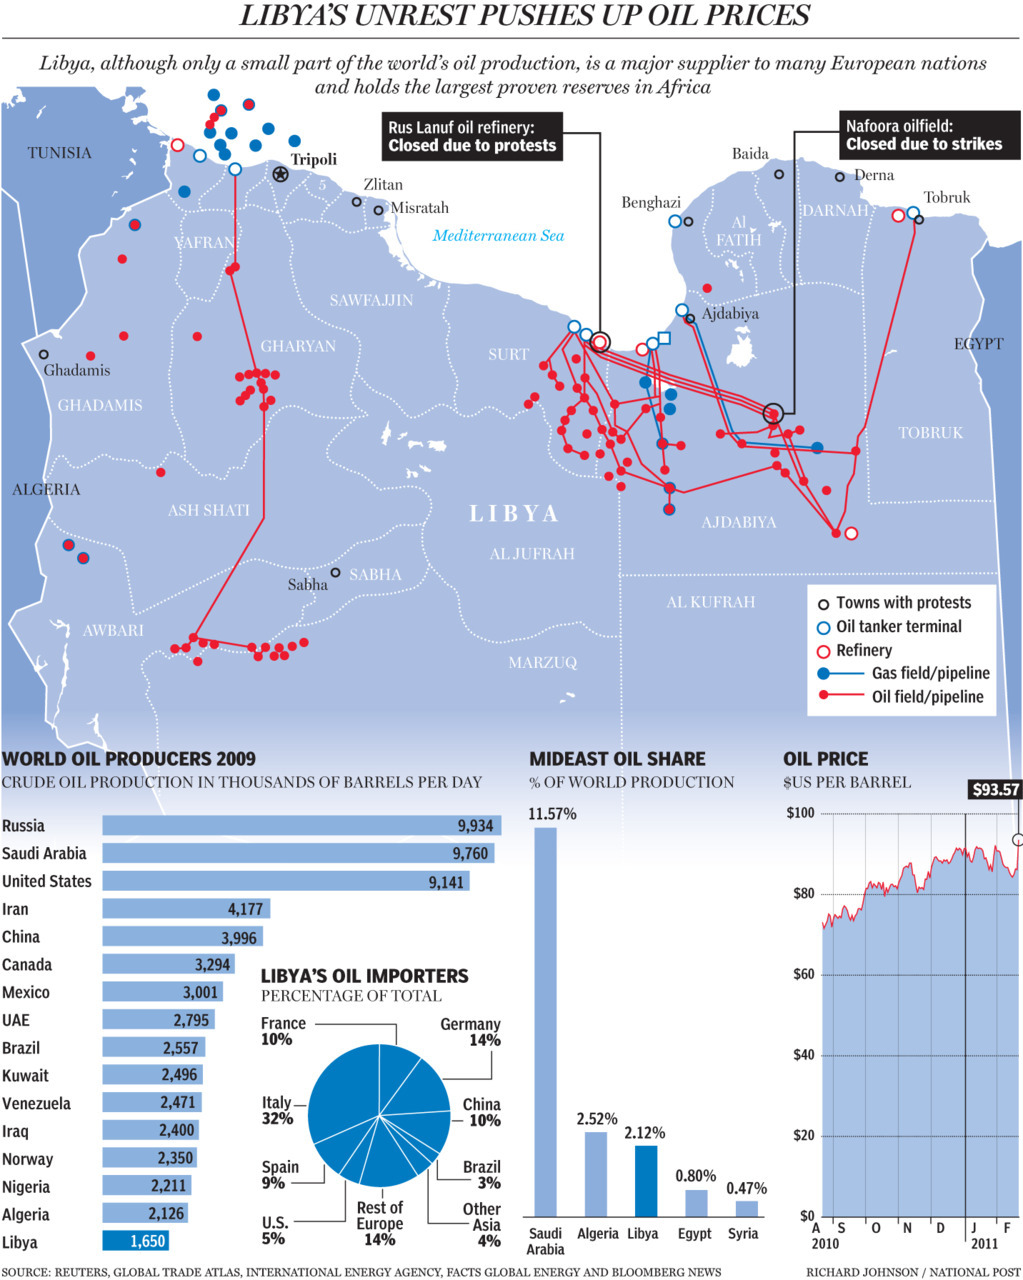 "Libya's unrest pushes up oil pricesLibya, although only a small part of the world's oil production, is a major supplier to many European nations and holds the largest proven reserves in Africa.Oil supply crisis lurks in LibyaLibya is the first major oil producer whose regime is at risk from the uprisings sweeping the Middle East and North Africa. If Libya falls, anyone of the major oil producers could be next. Already, there has been unrest in Yemen and Bahrain, where civic protests continued Tuesday, and calls for change in Saudi Arabia, Kuwait and Oman.""The world could deal with the loss of Libyan barrels, but the worry is that it won't stop at Libya,"" Bill O'Grady, chief market strategist at Confluence Investment Management in St. Louis, told Bloomberg News. ""We don't know where this is going to end."""